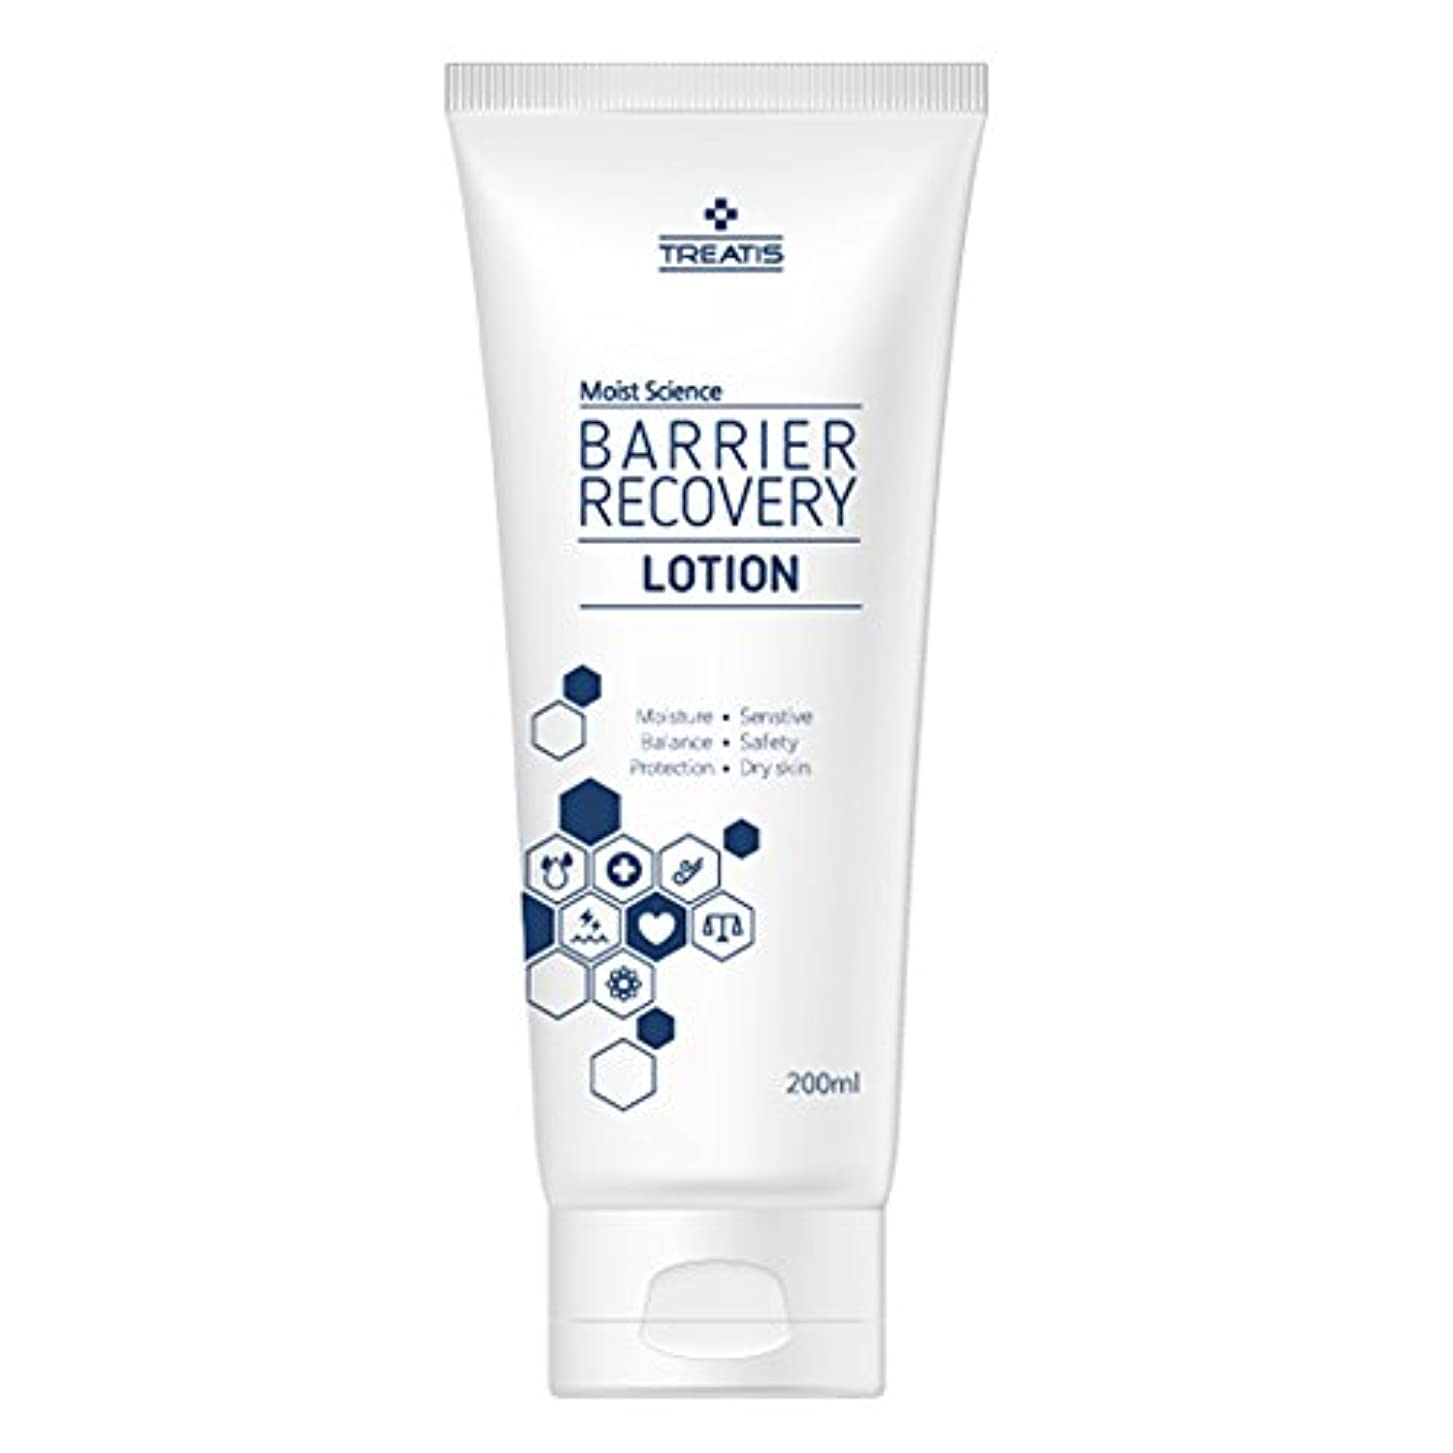 人気の隣接するポゴスティックジャンプTreatis barrier recovery lotion 7oz (200ml)/Moisture, Senstive, Balance, Safty, Protection, Dry skin [並行輸入品]